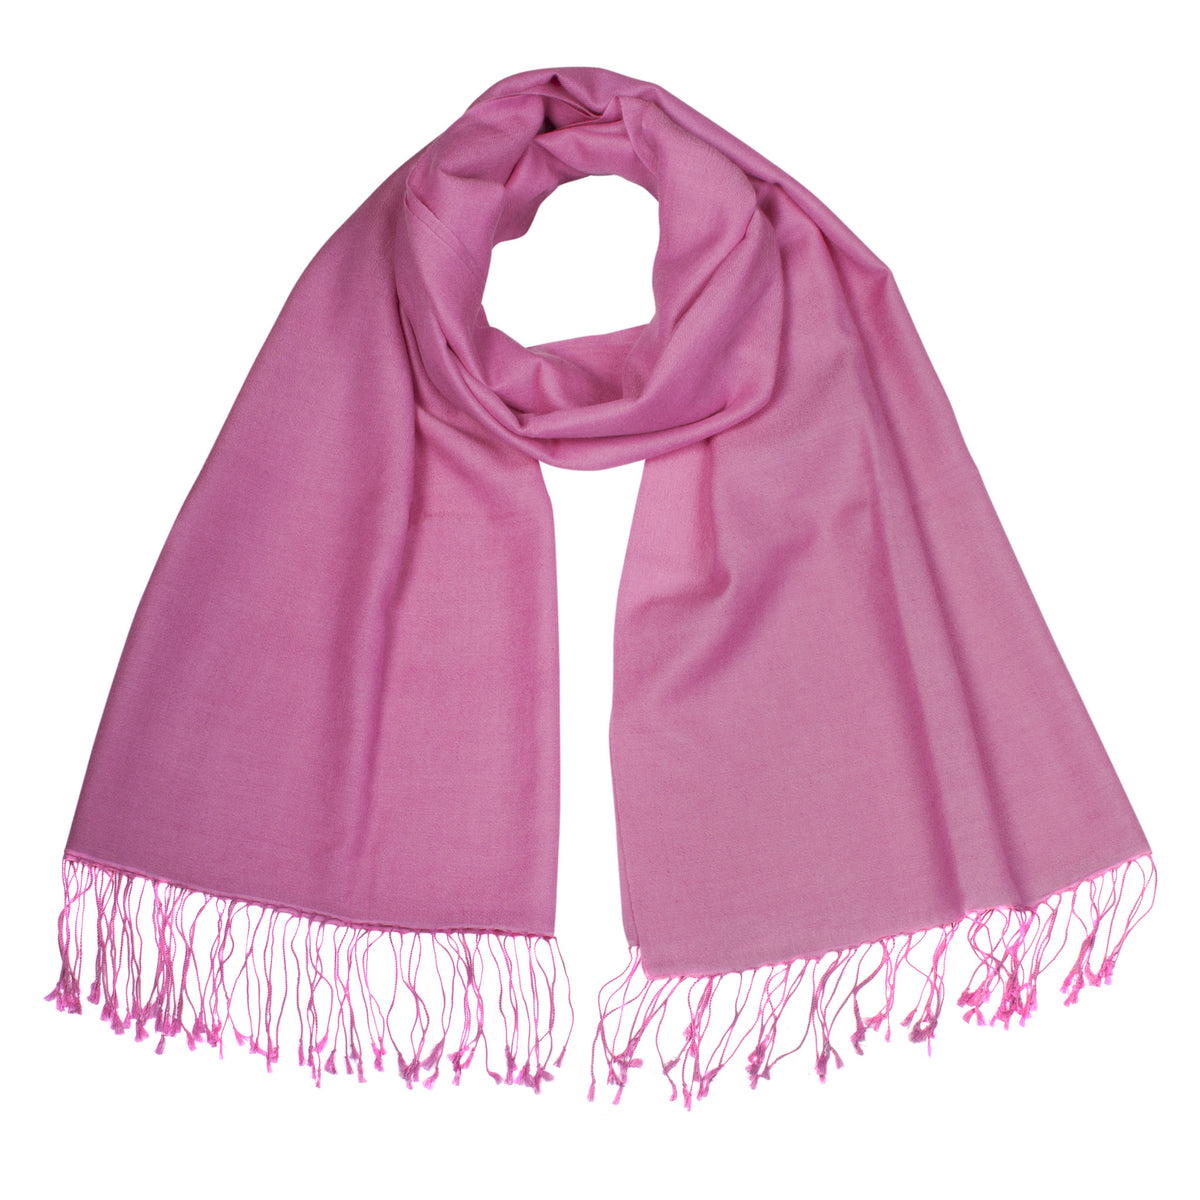 Pink Pashsmina Stole | buy now at The Cashmere Choice London